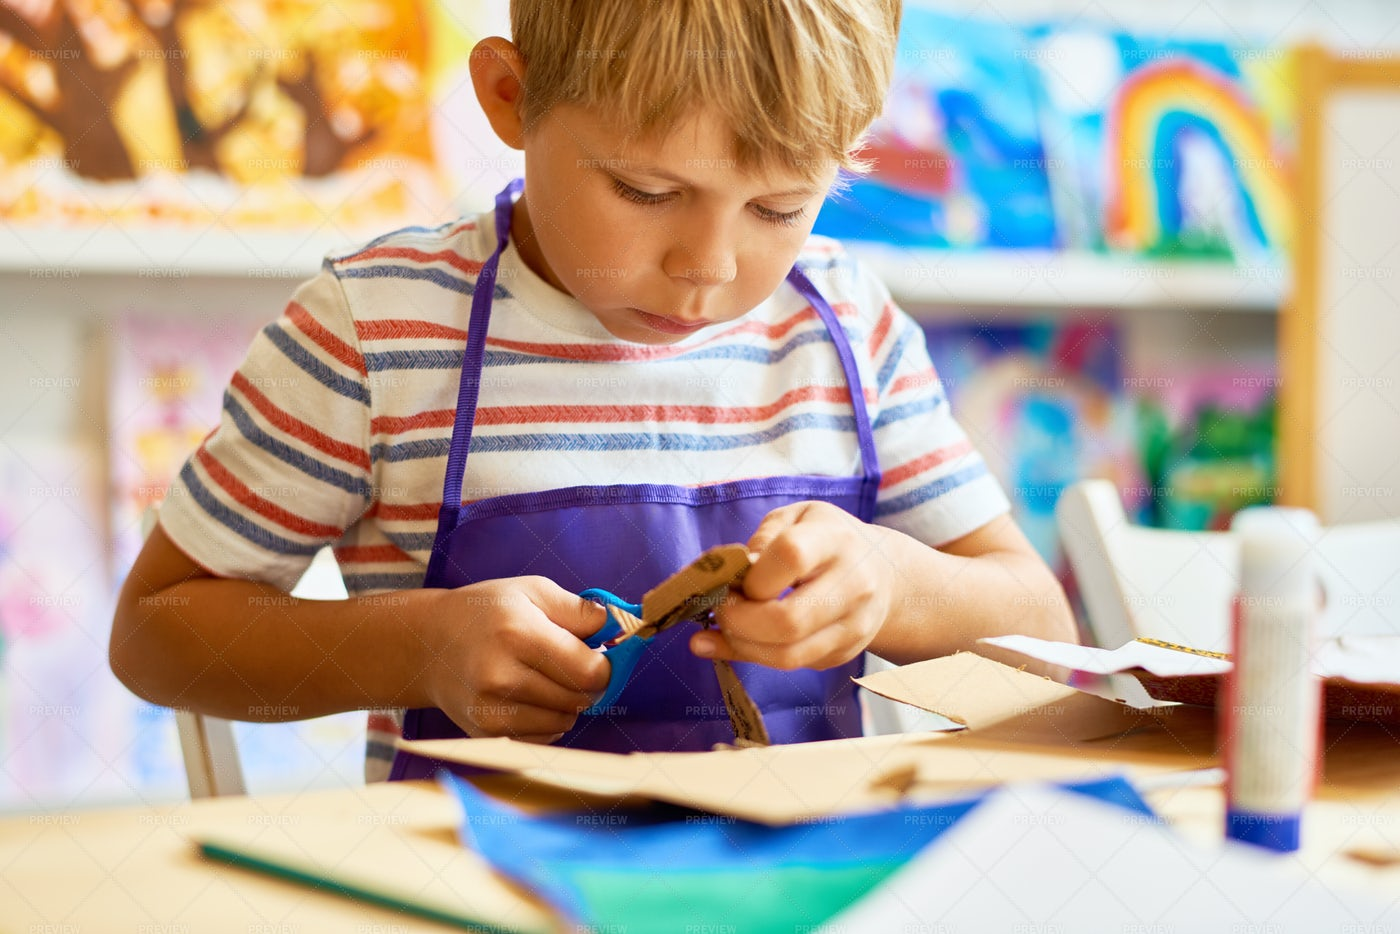 Little Boy Cutting Paper In Craft...: Stock Photos